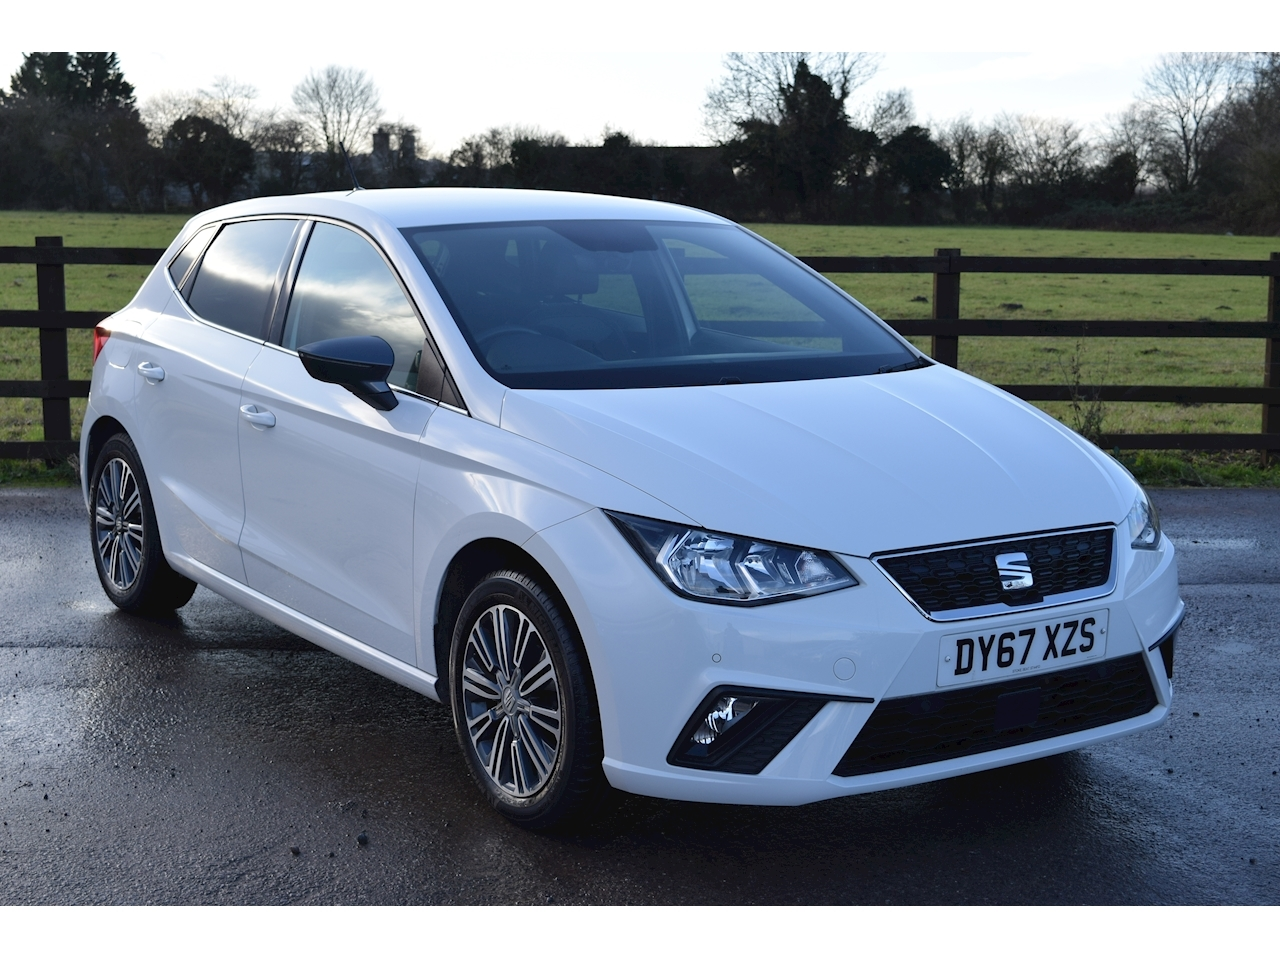 SEAT 1.0 TSI XCELLENCE Hatchback 5dr Petrol Manual (s/s) (95 ps)